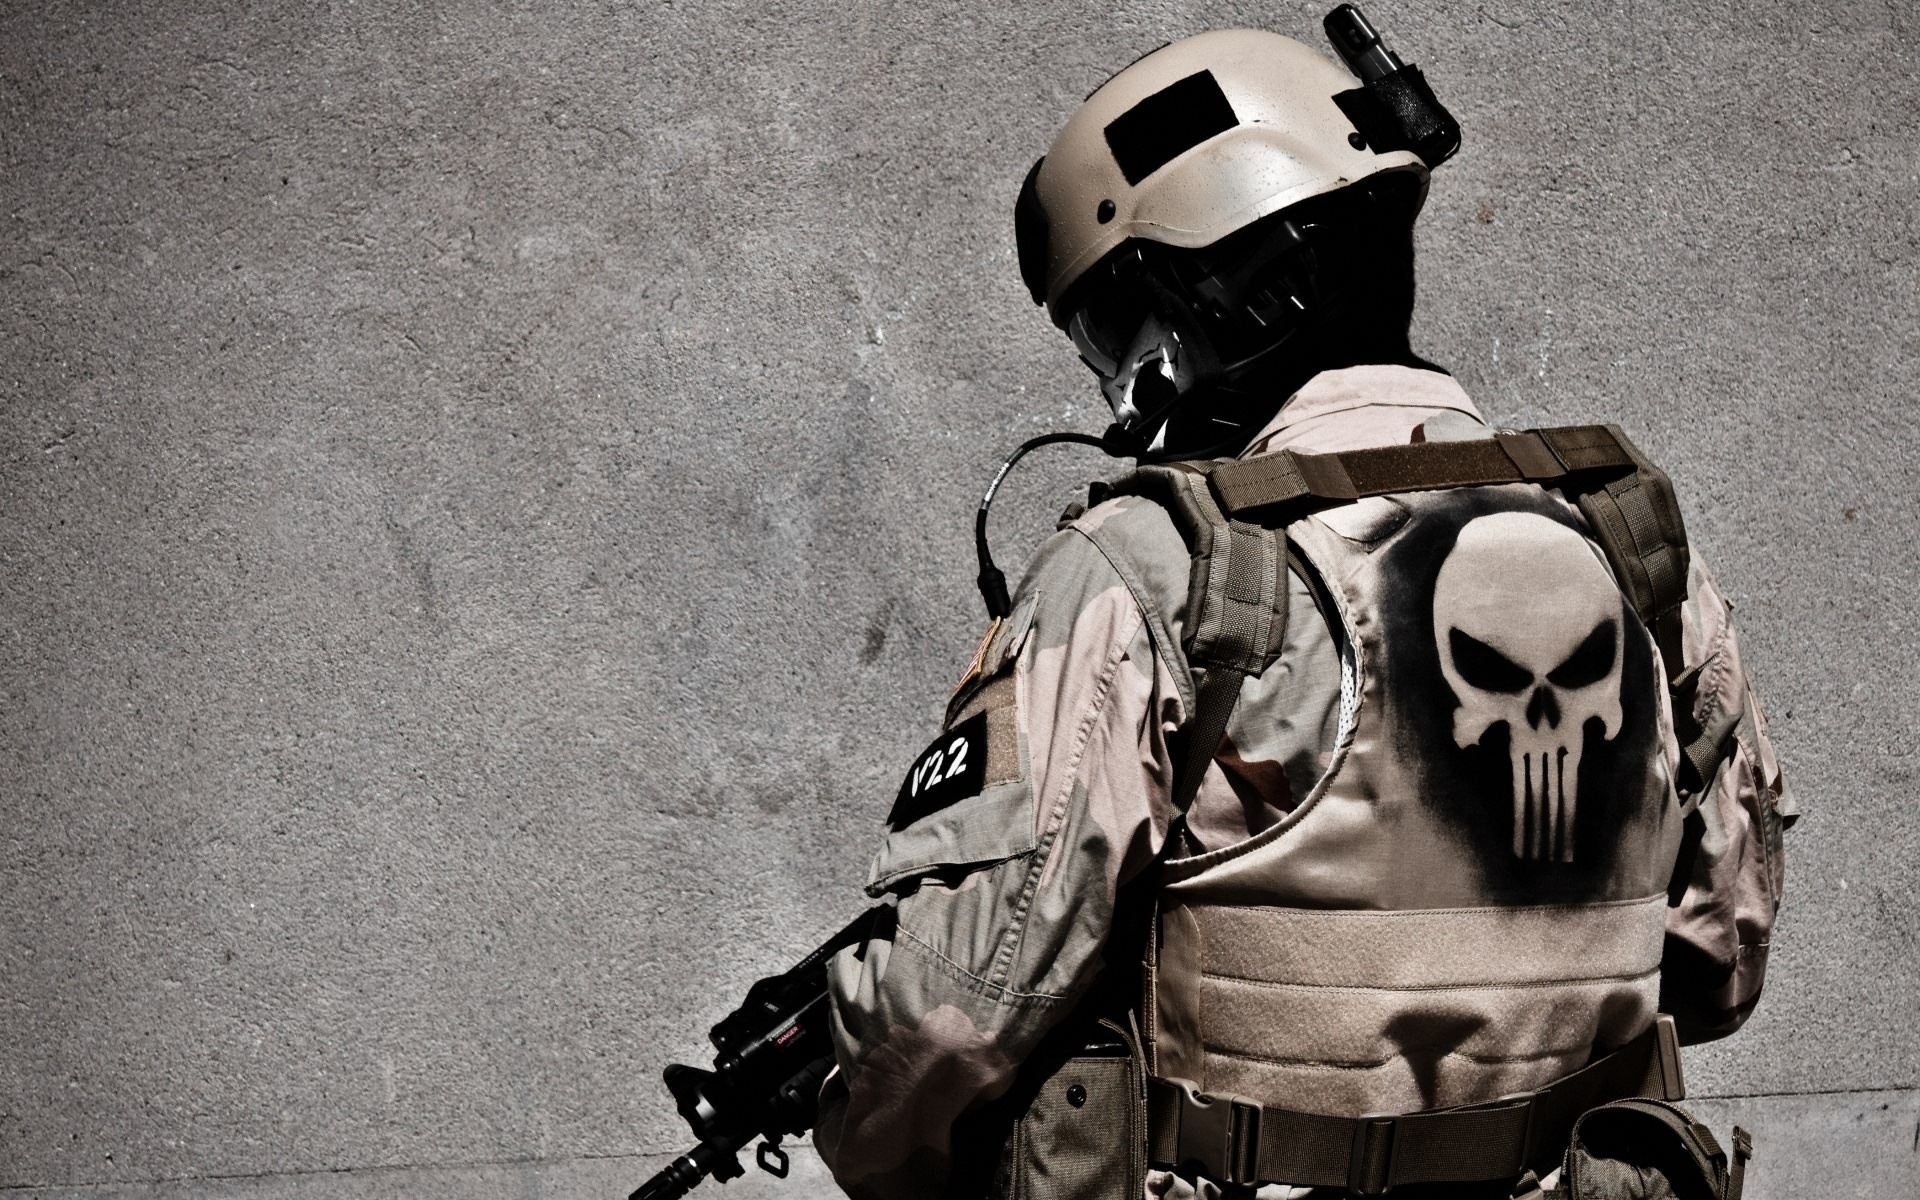 49351 download wallpaper People, Men, War screensavers and pictures for free